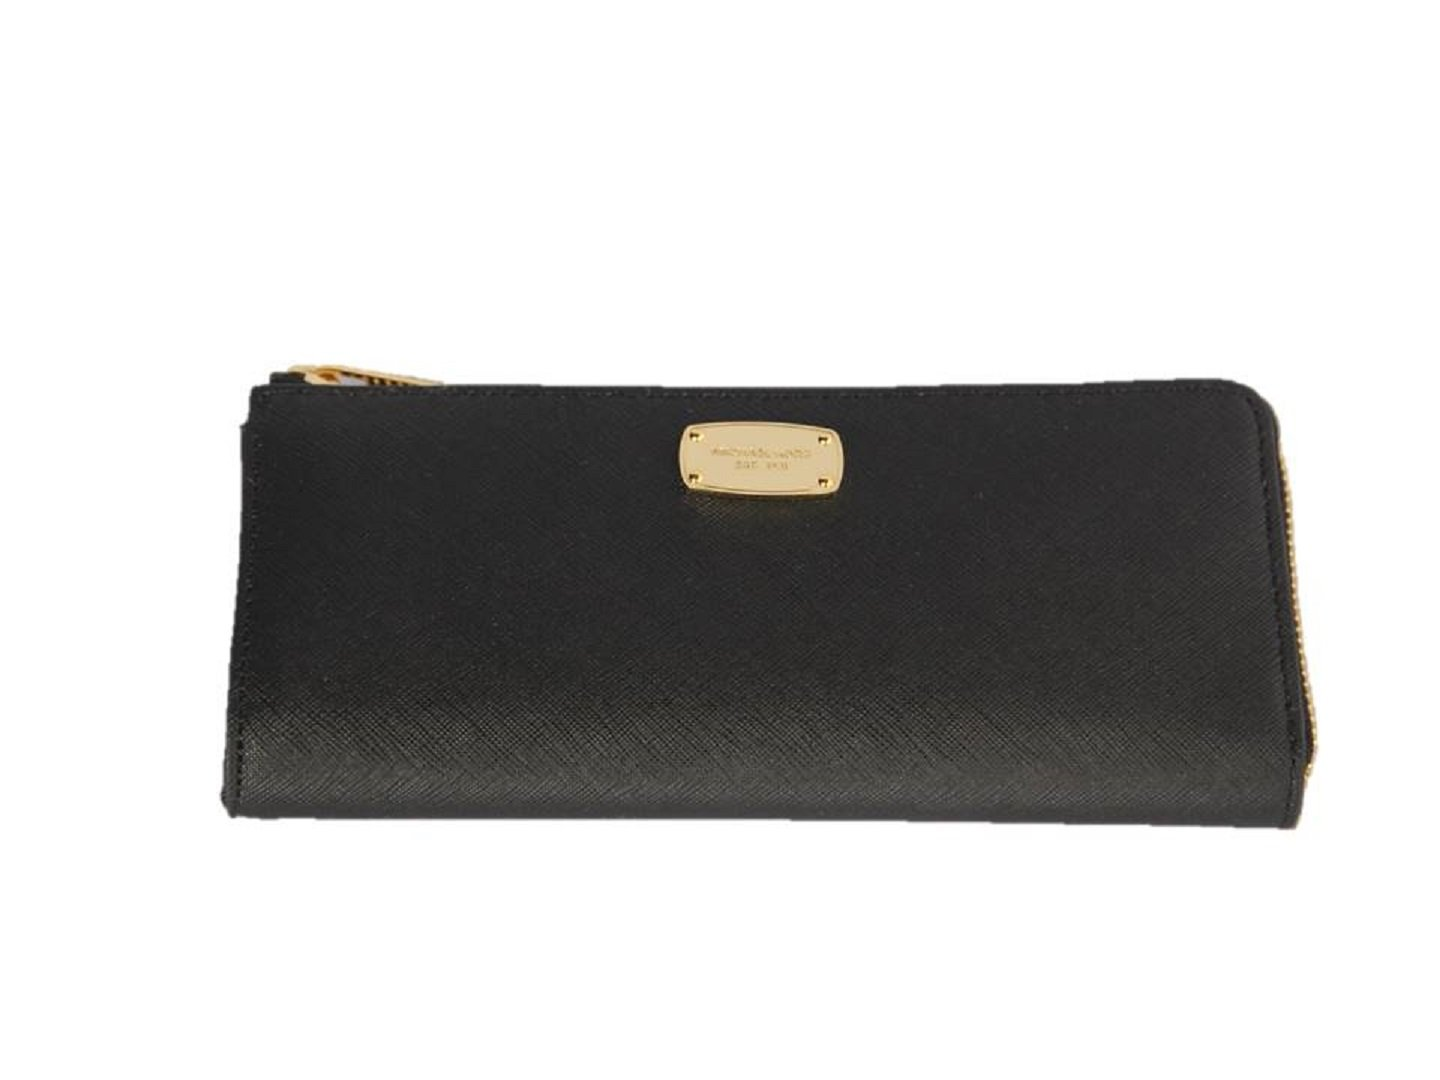 Michael Kors Jet Set Travel Wristlet Wallet Black Leather (35T6GTVE3L) by Michael Kors